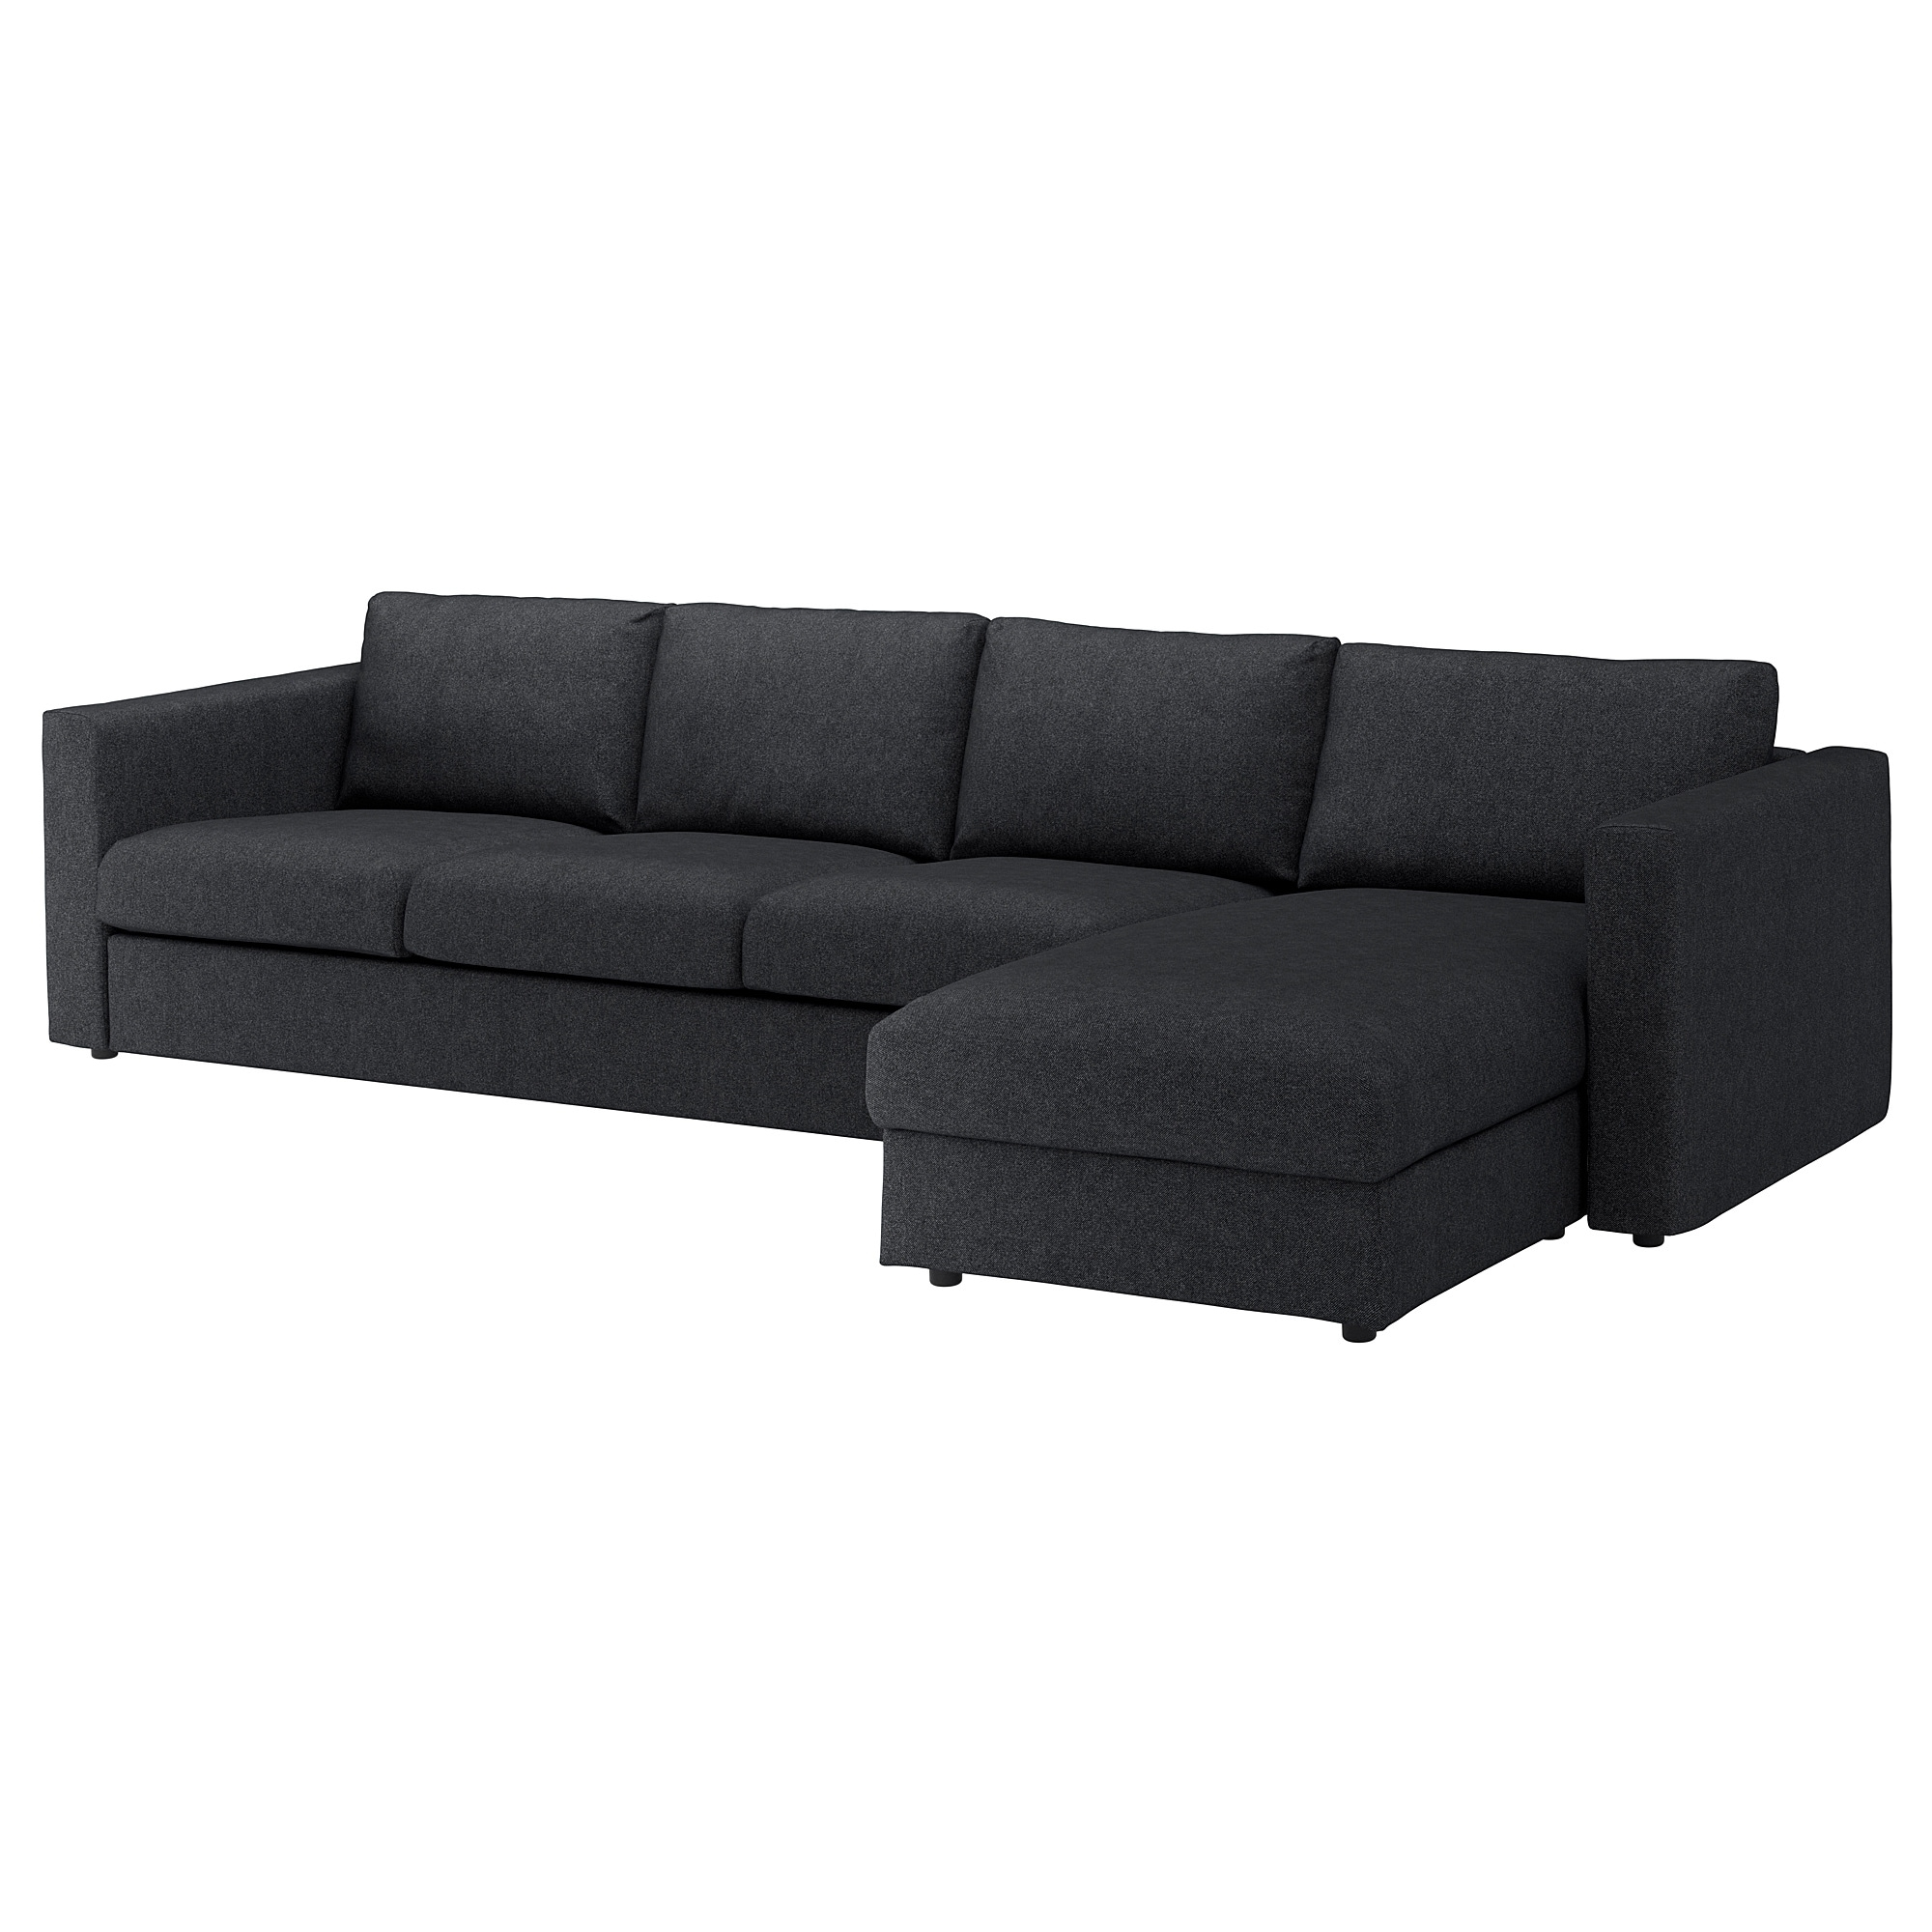 Vimle Sectional, 4-Seat - With Chaise/tallmyra Black/gray - Ikea pertaining to Norfolk Grey 6 Piece Sectionals (Image 30 of 30)